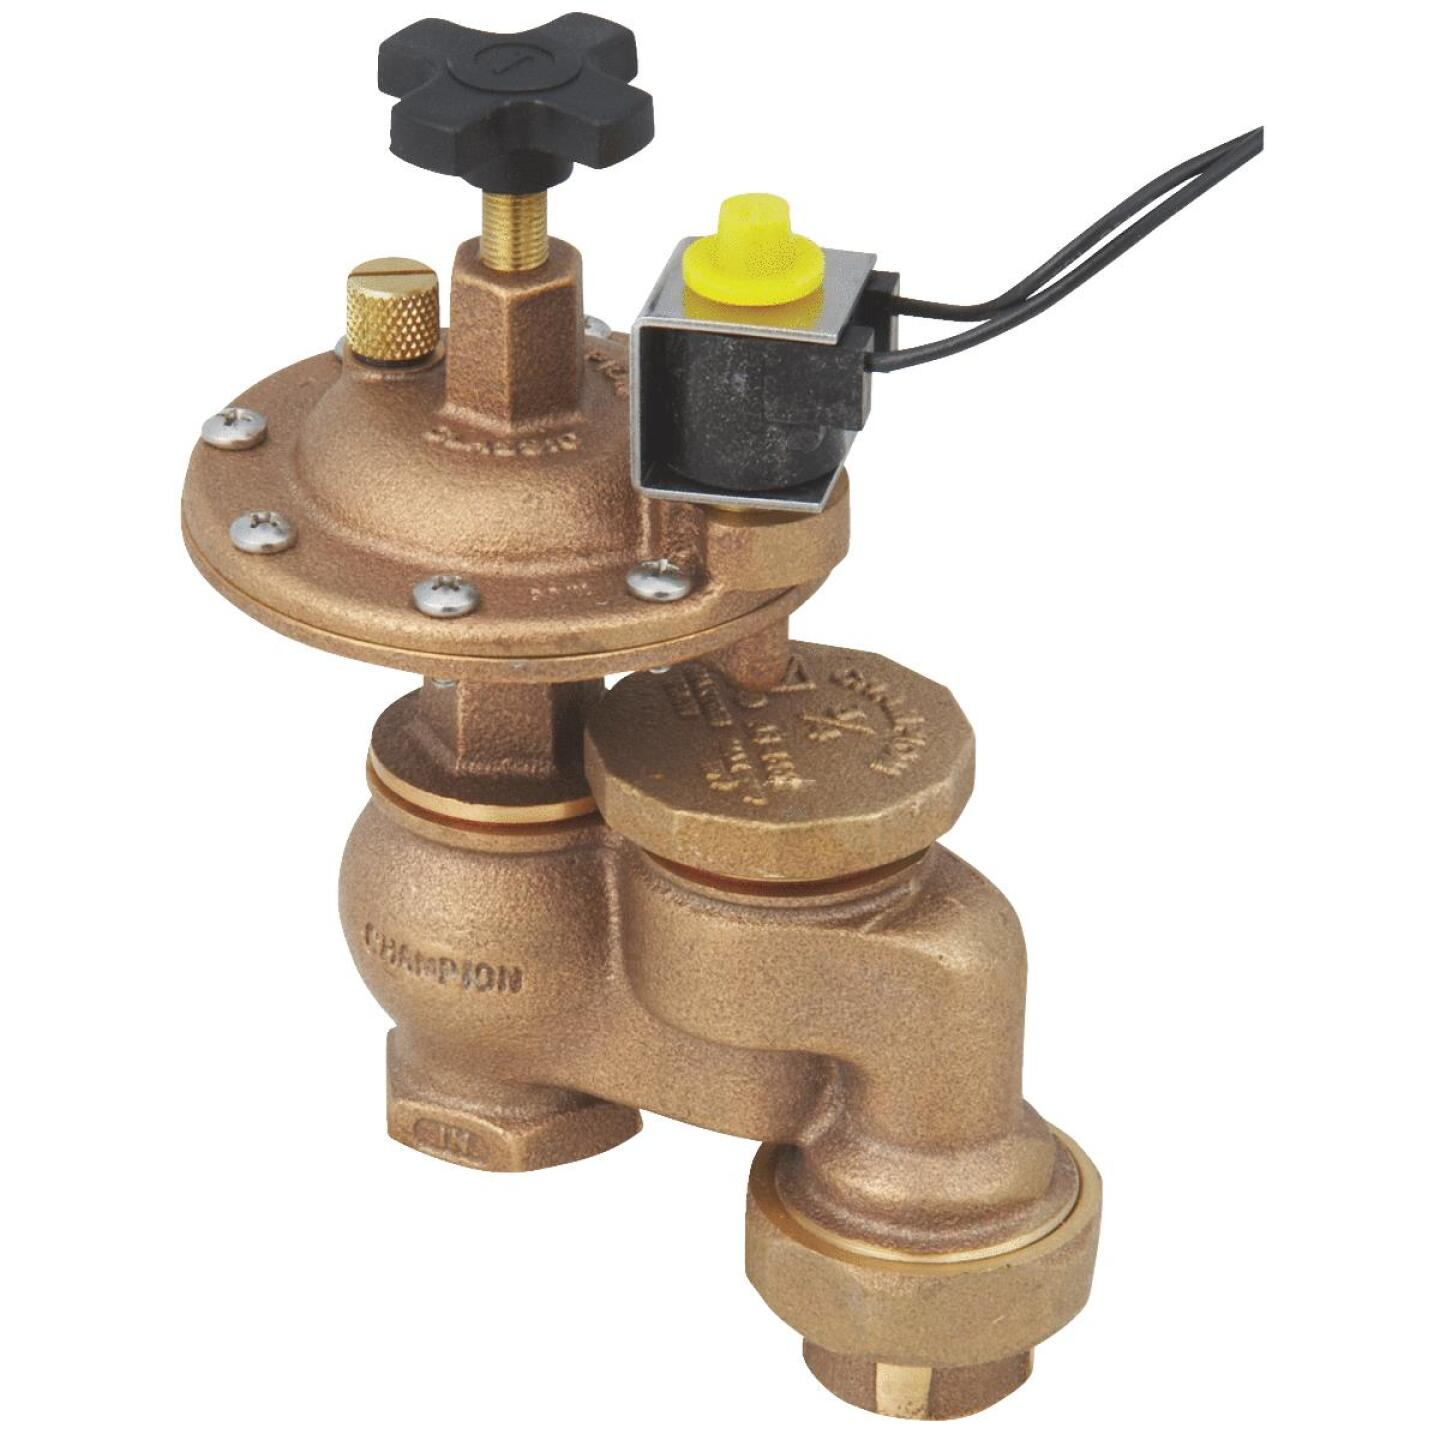 Champion 3/4 In. 25 to 150 psi Automatic Anti-Siphon Valve Image 1